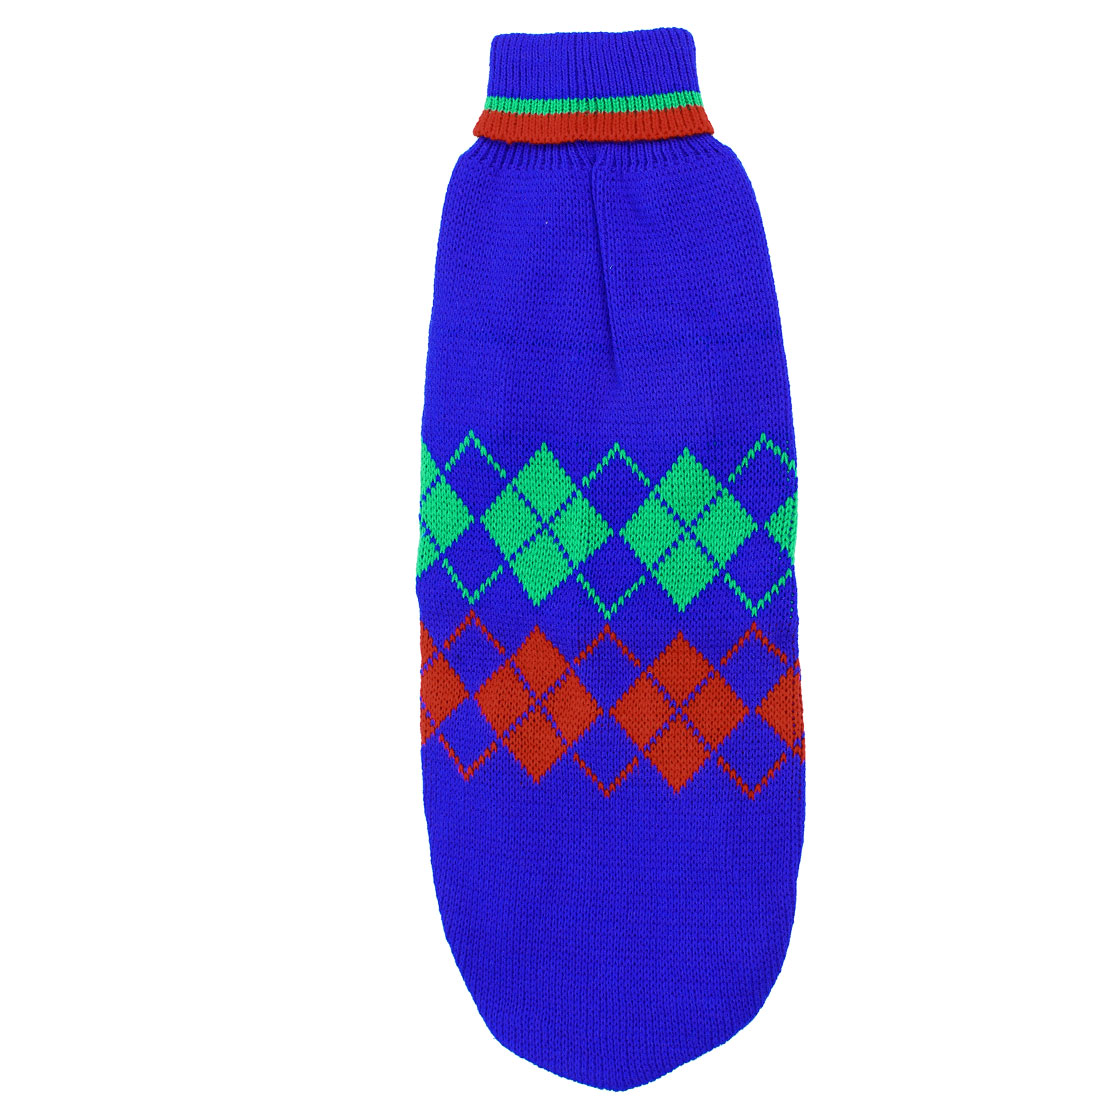 Pet Puppy Poodle Ribbed Cuff Knitwear Turtleneck Apparel Sweater Blue Green Red Size M